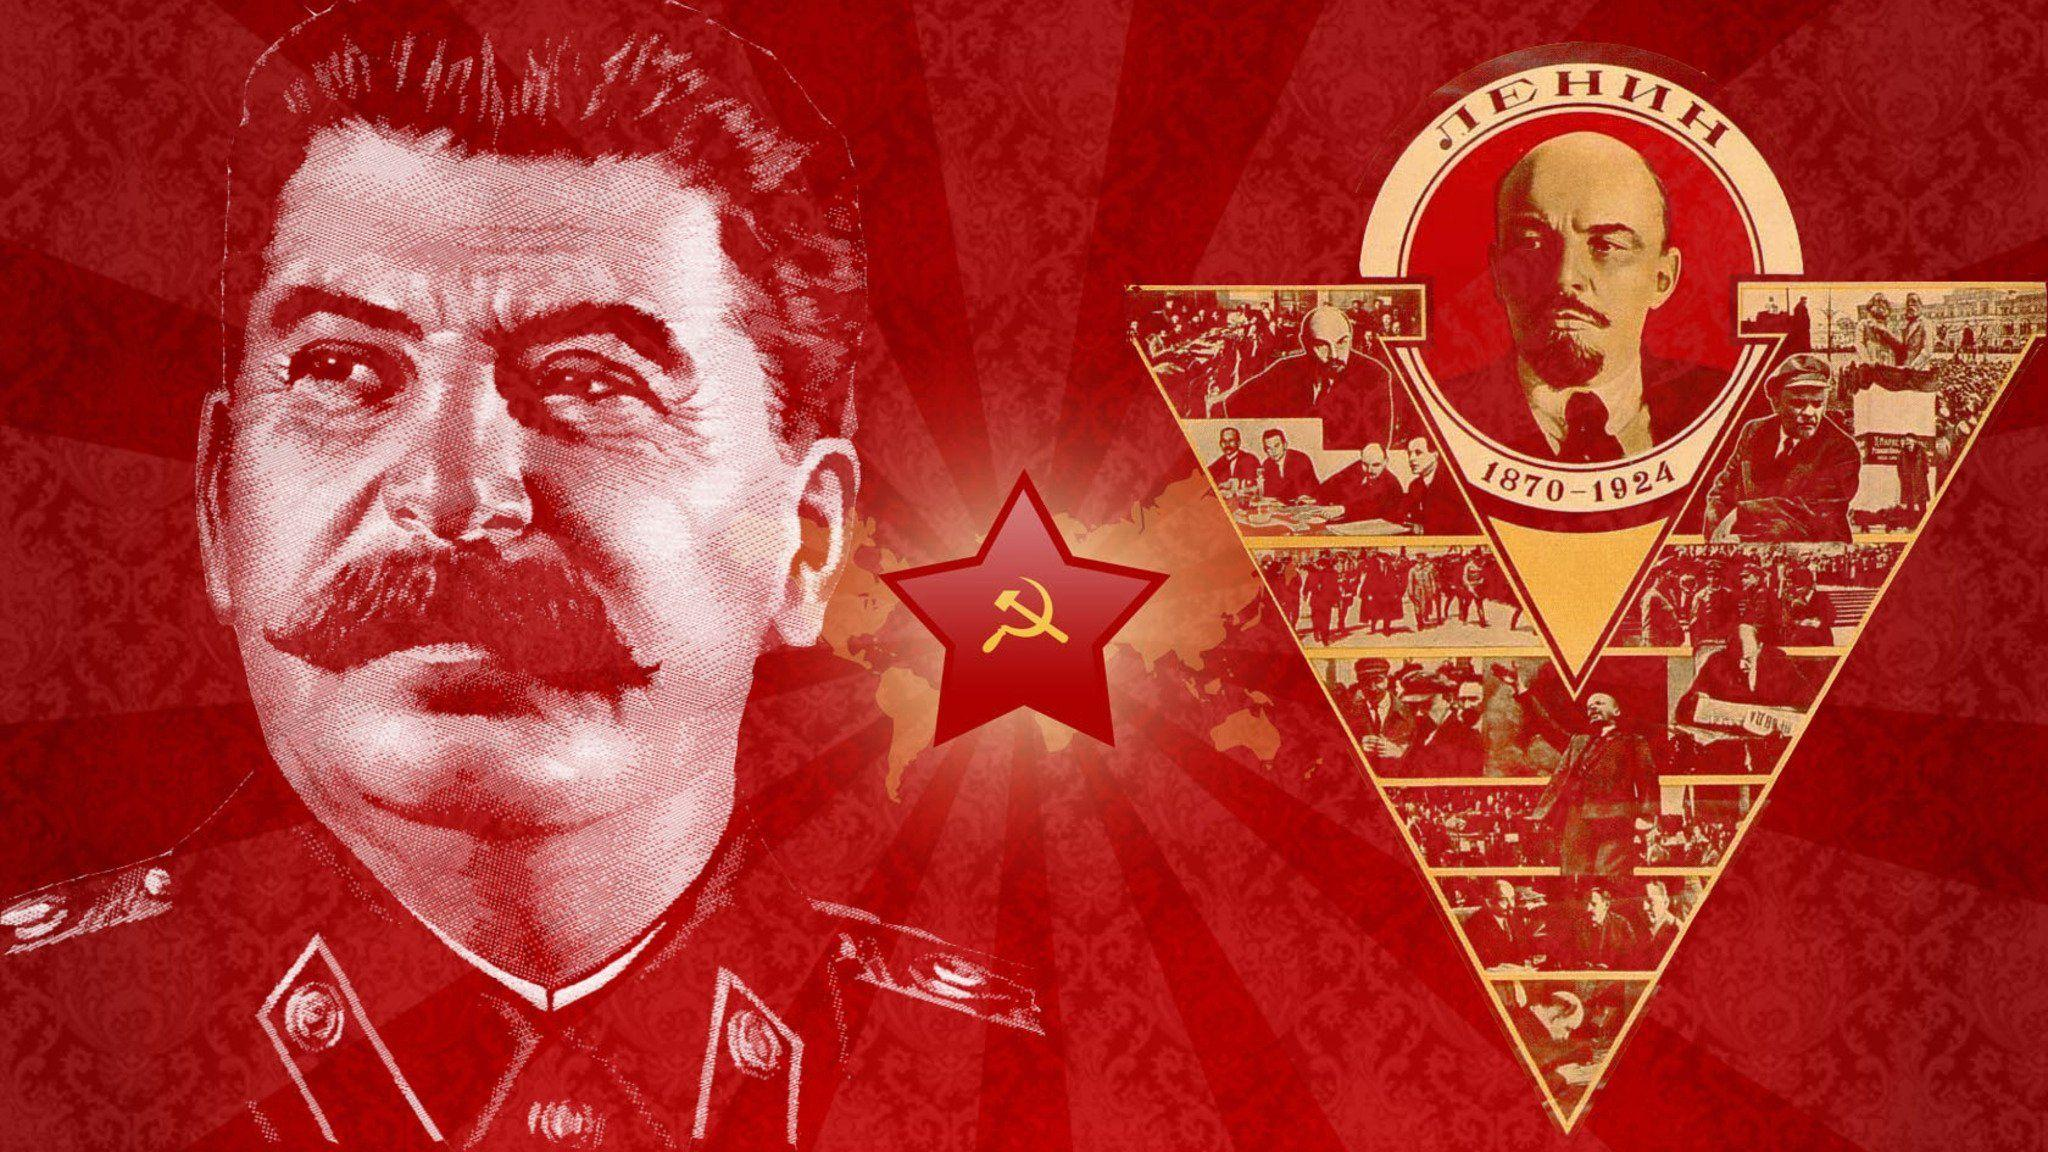 the rule and contributions of joseph stalin to the soviet union Joseph vissarionovich stalin [lower-alpha 1] (/ ˈ s t ɑː l ɪ n / [1] 18 december 1878 [2] – 5 march 1953) was the leader of the soviet union from the mid-1920s until his death in 1953 holding the post of the general secretary of the central committee of the communist party of the soviet union , he was effectively the dictator of the state.